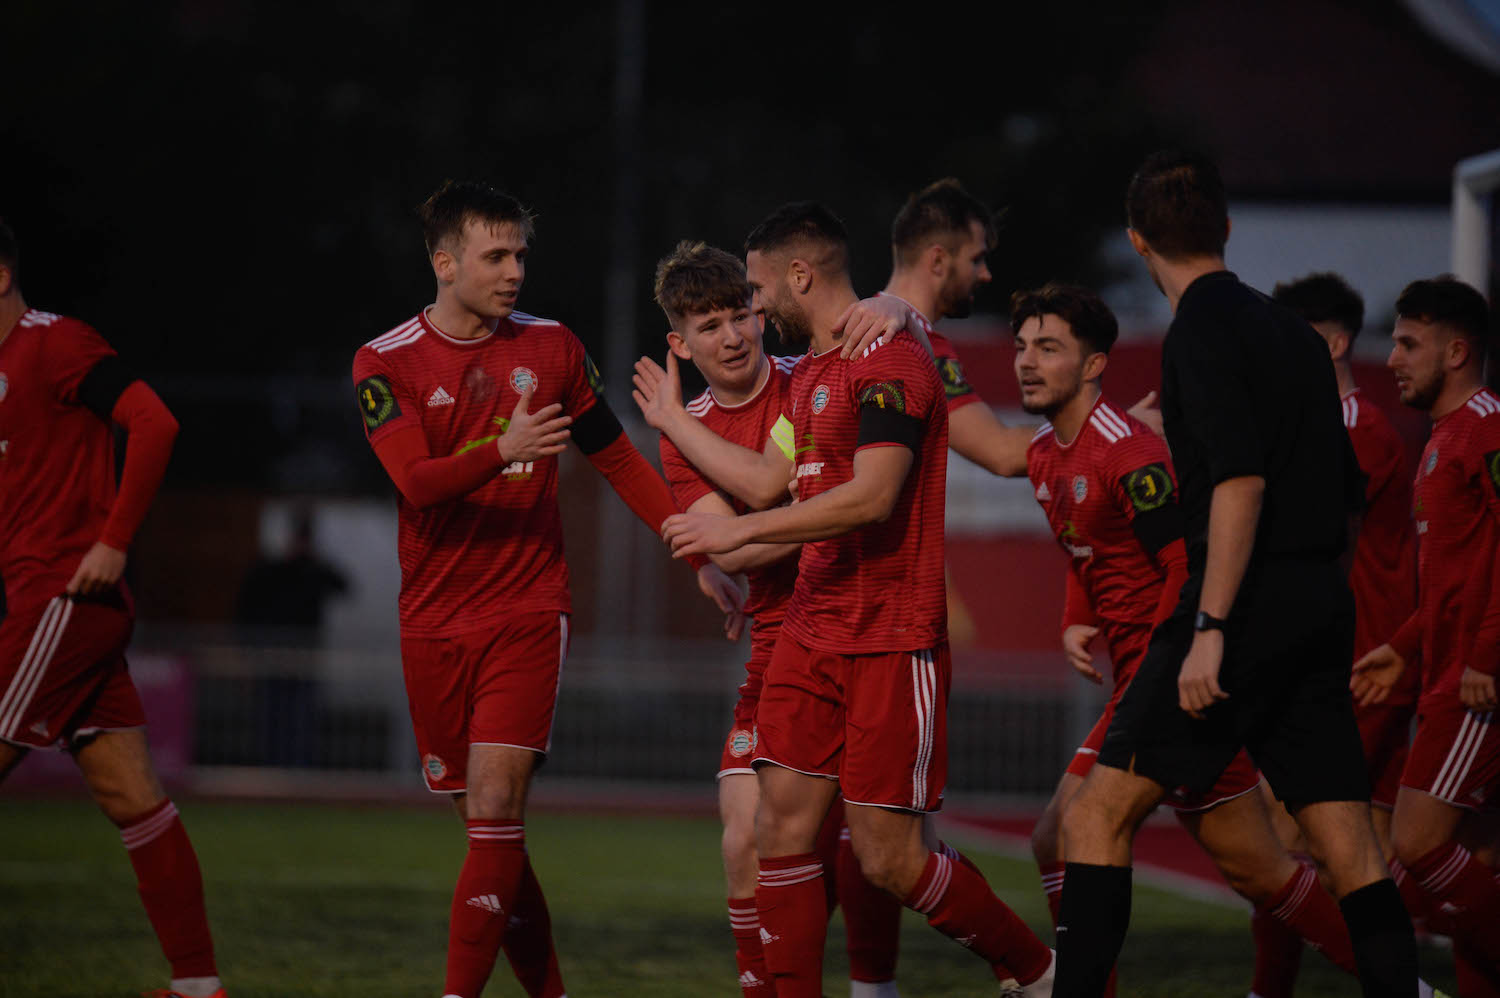 Read the full article - GALLERY | 19/20: Horsham [H] – League